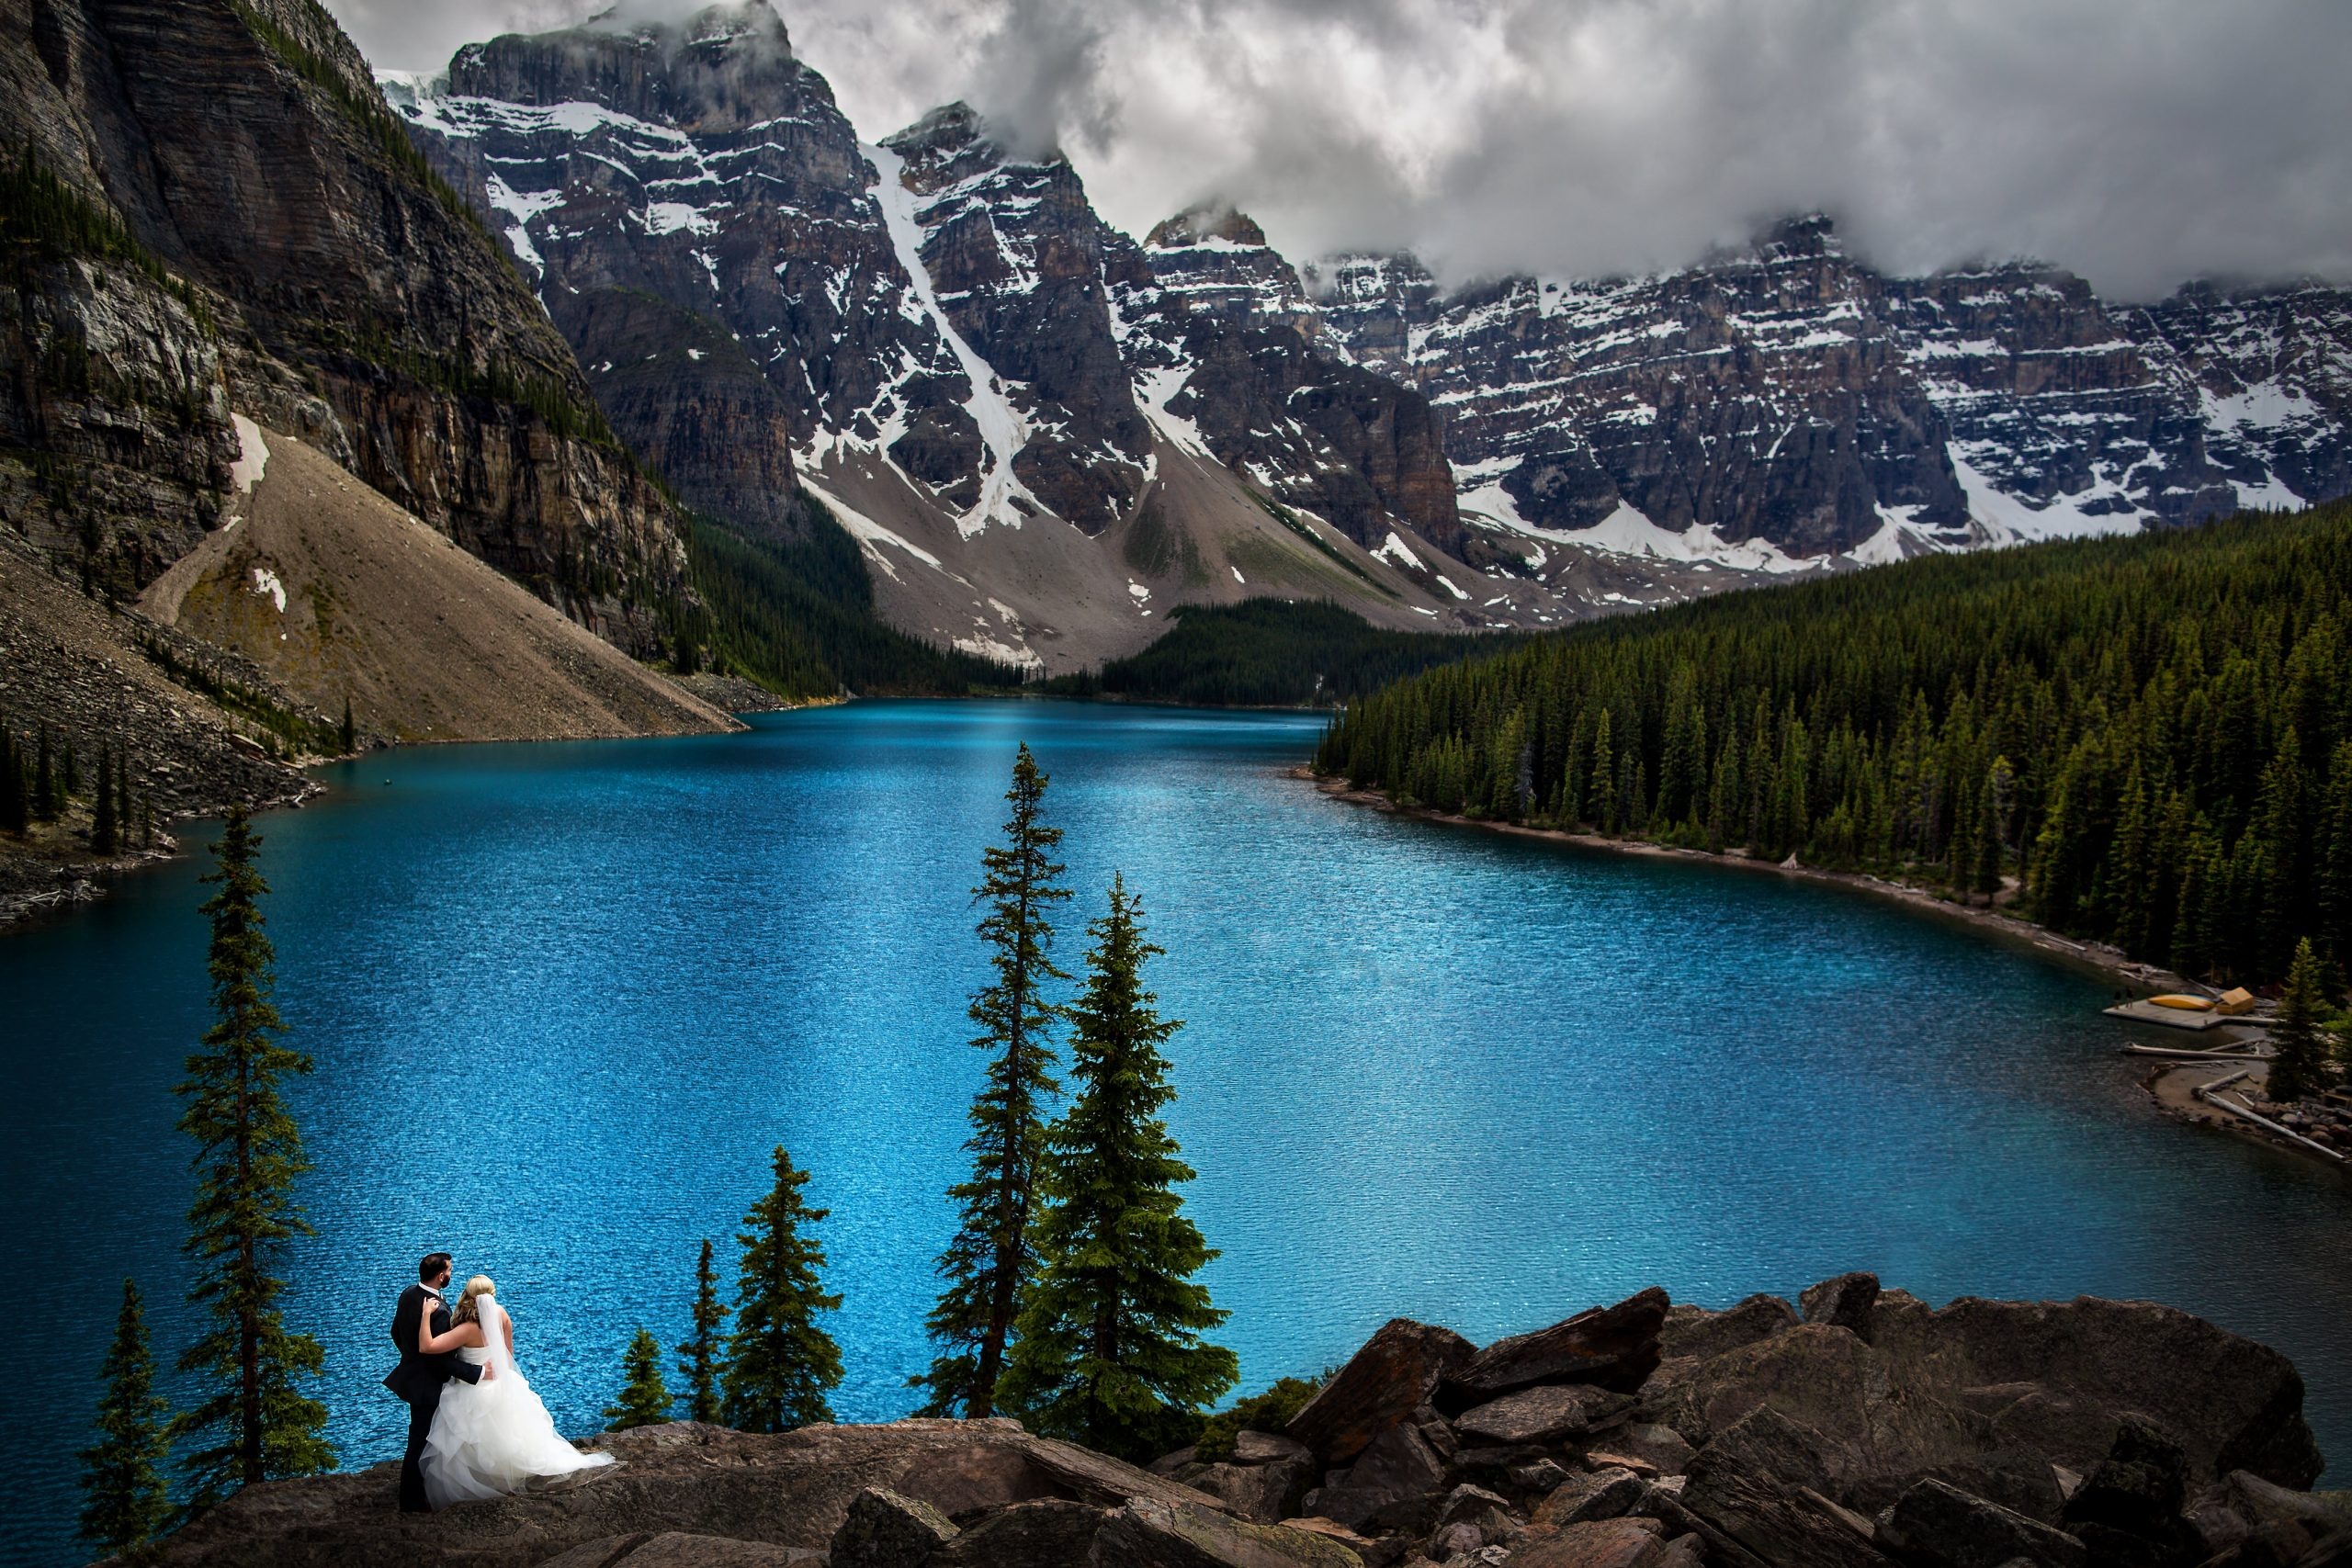 Bride and groom look over lake and forest, mountain landscape